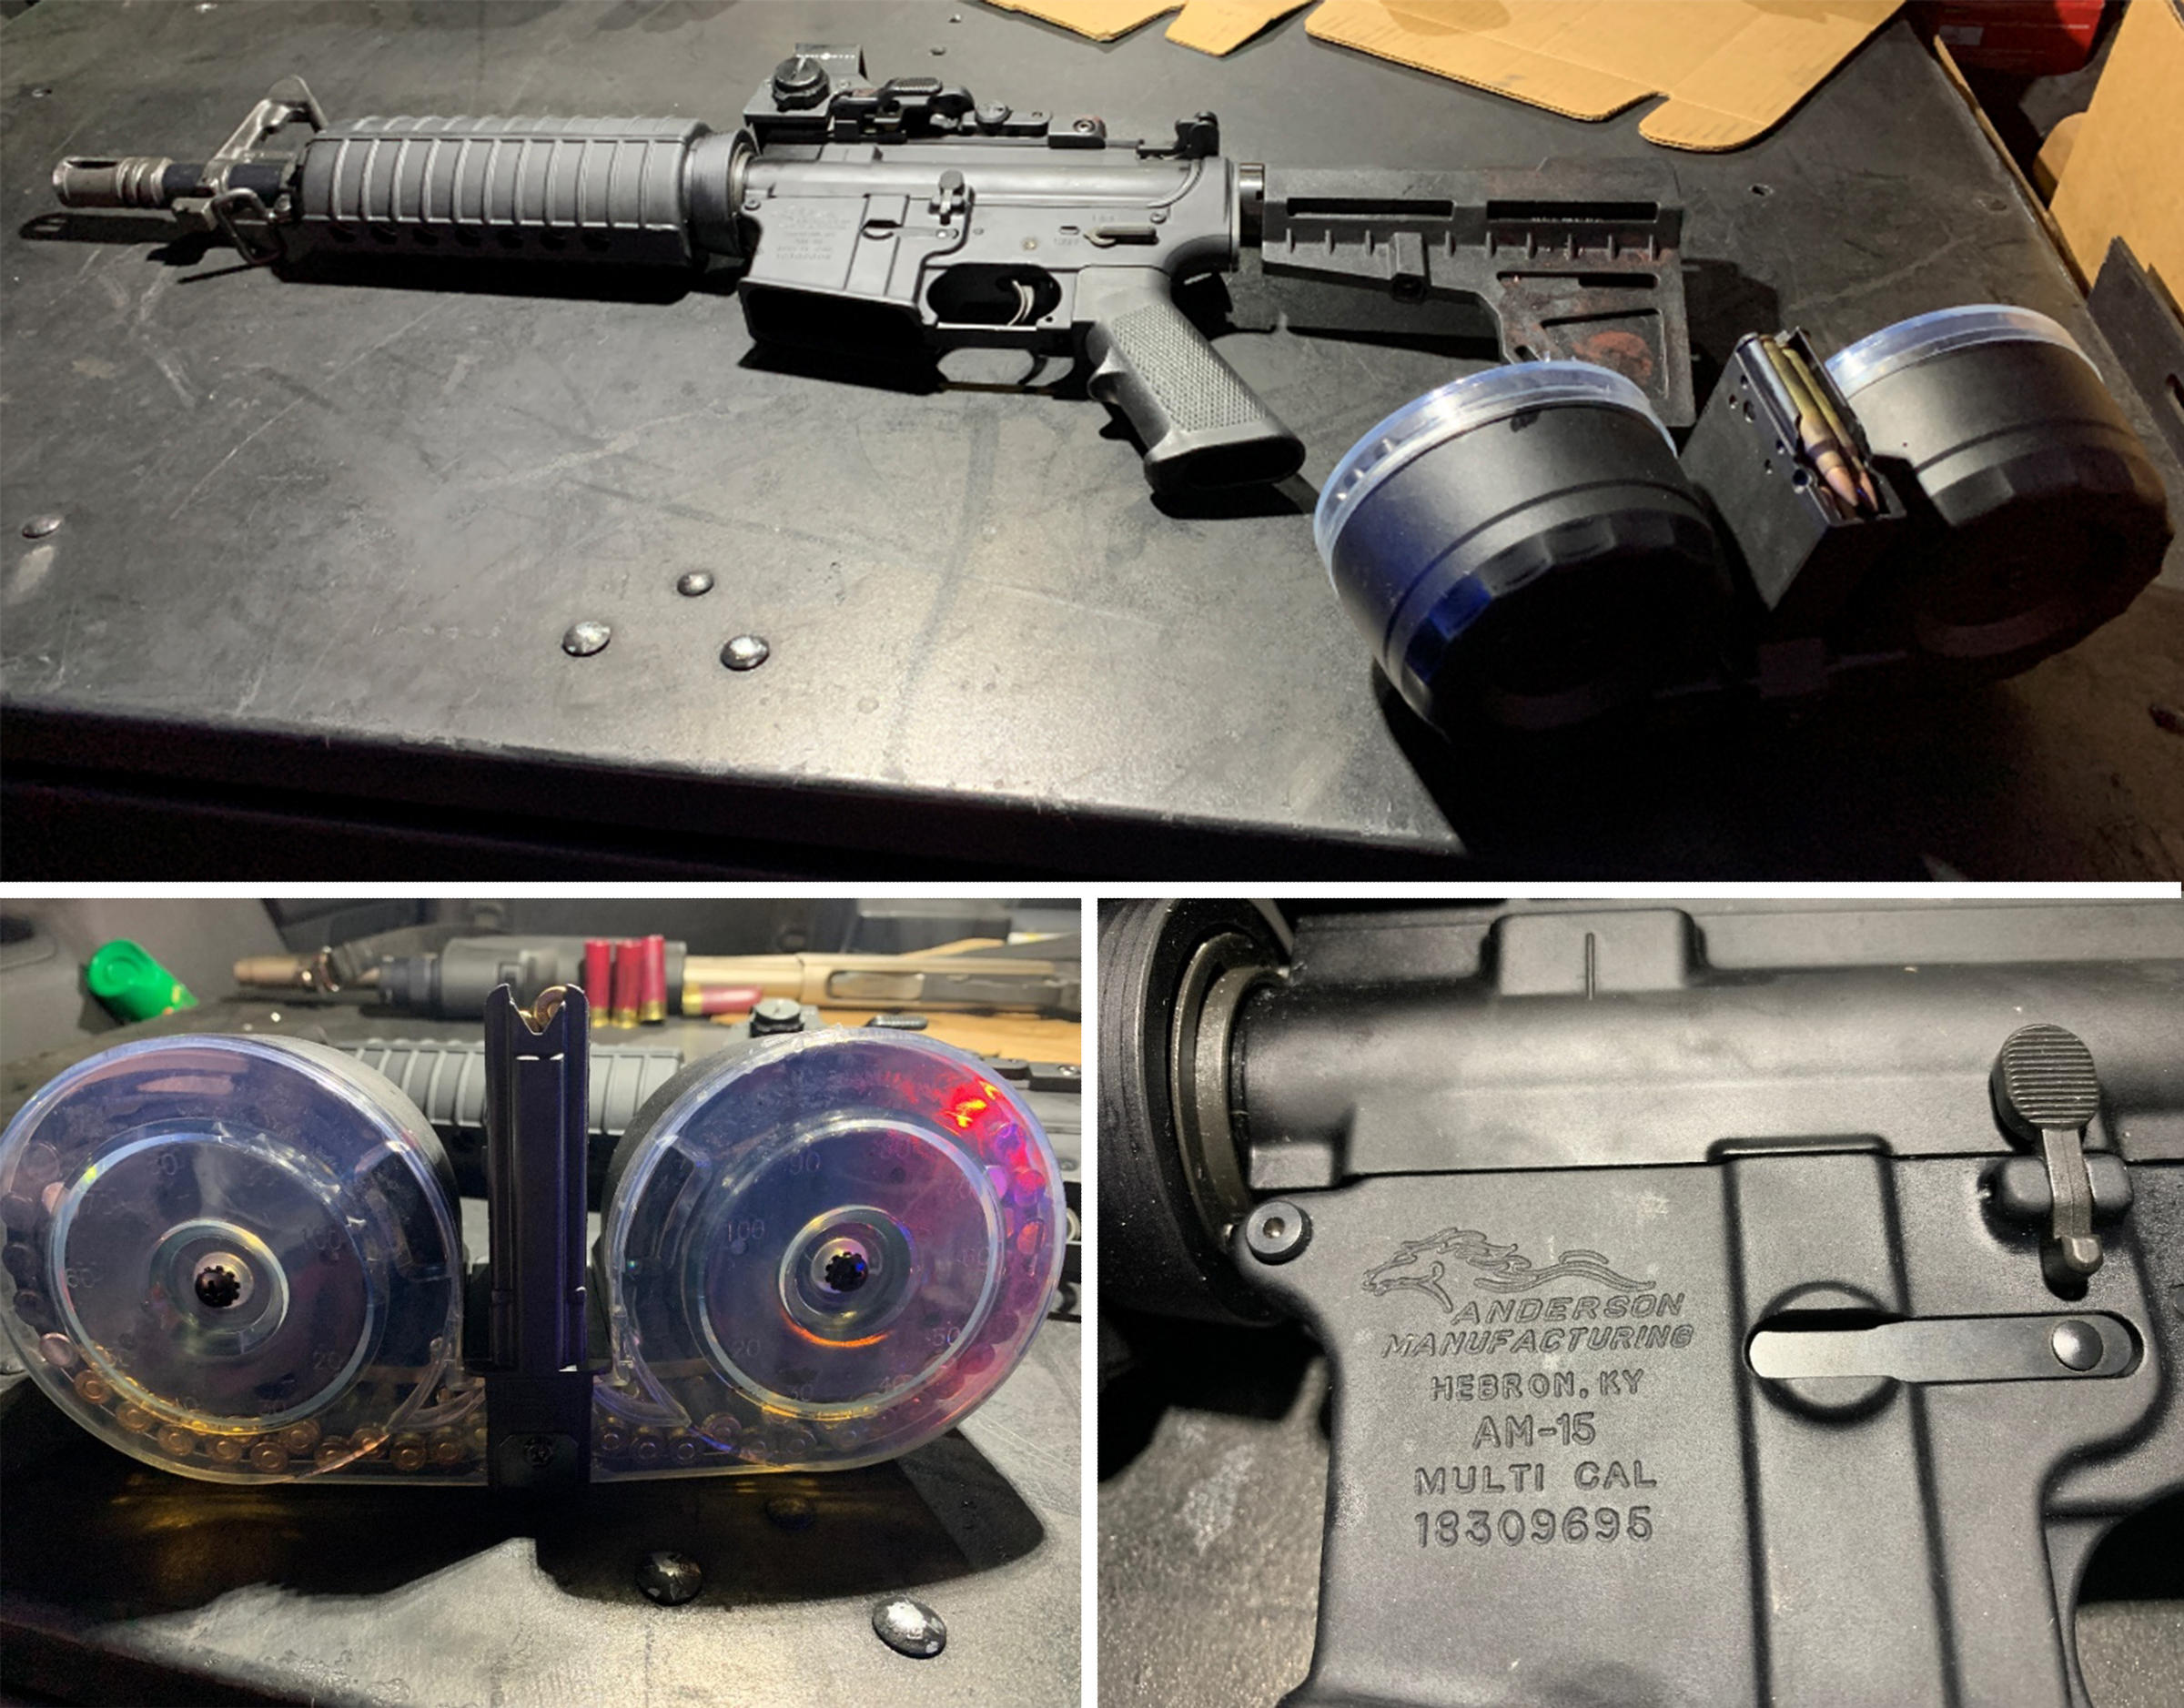 The Pistol That Looks Like A Rifle: The Dayton Shooter's Gun | WUNC